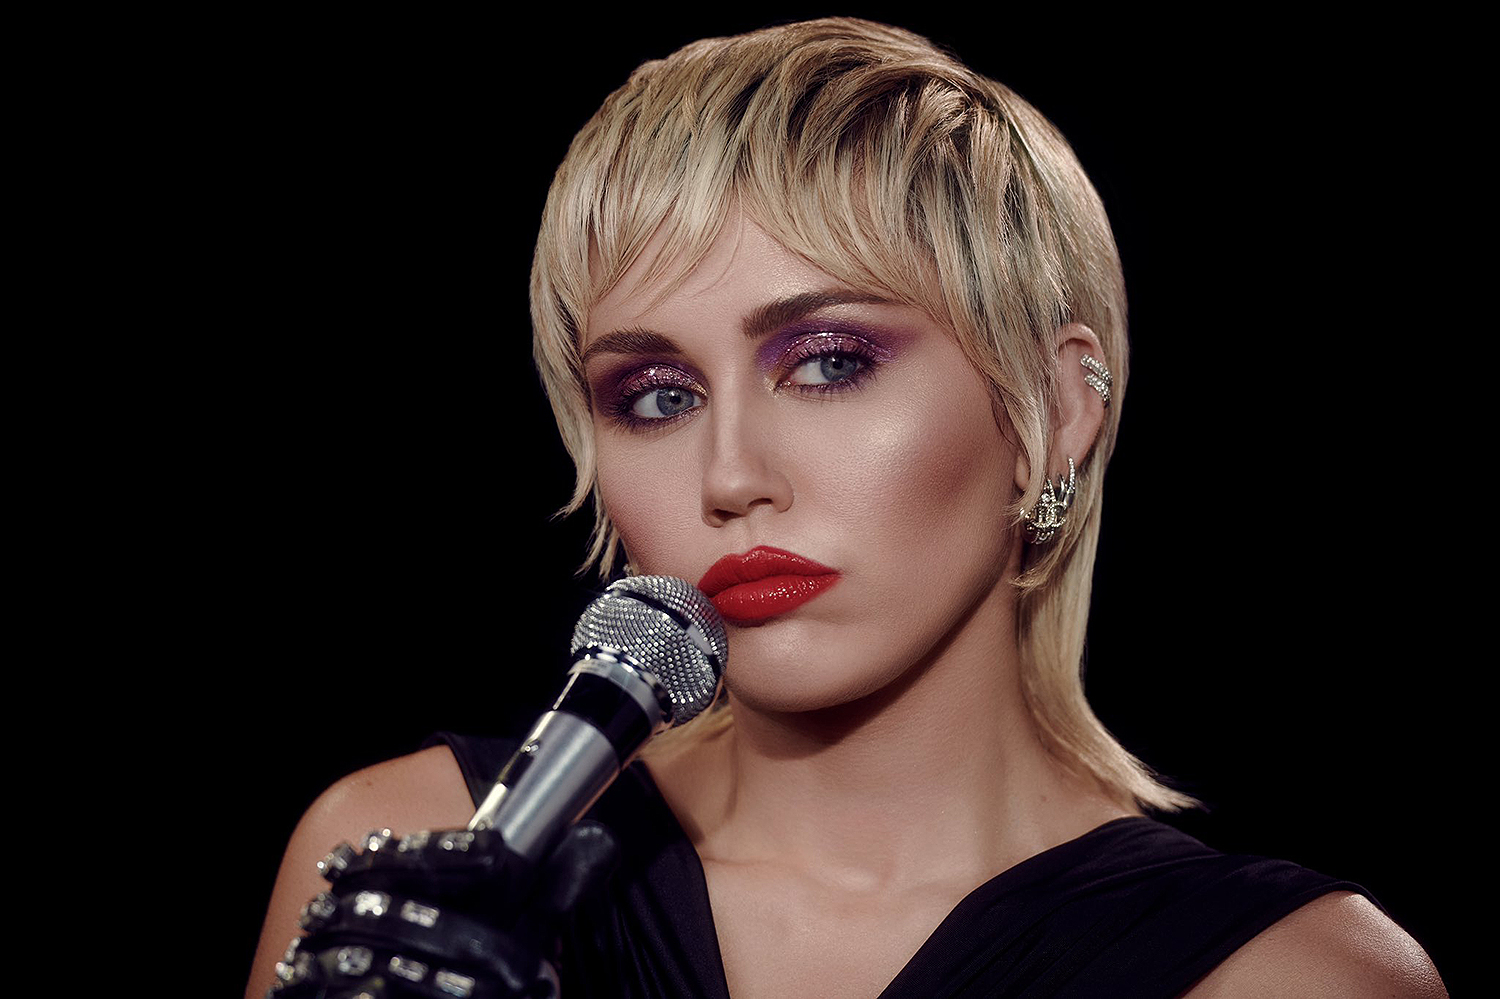 miley-cyrus-admits-that-portraying-hannah-montana-made-her-have-an-identity-crisis-heres-why